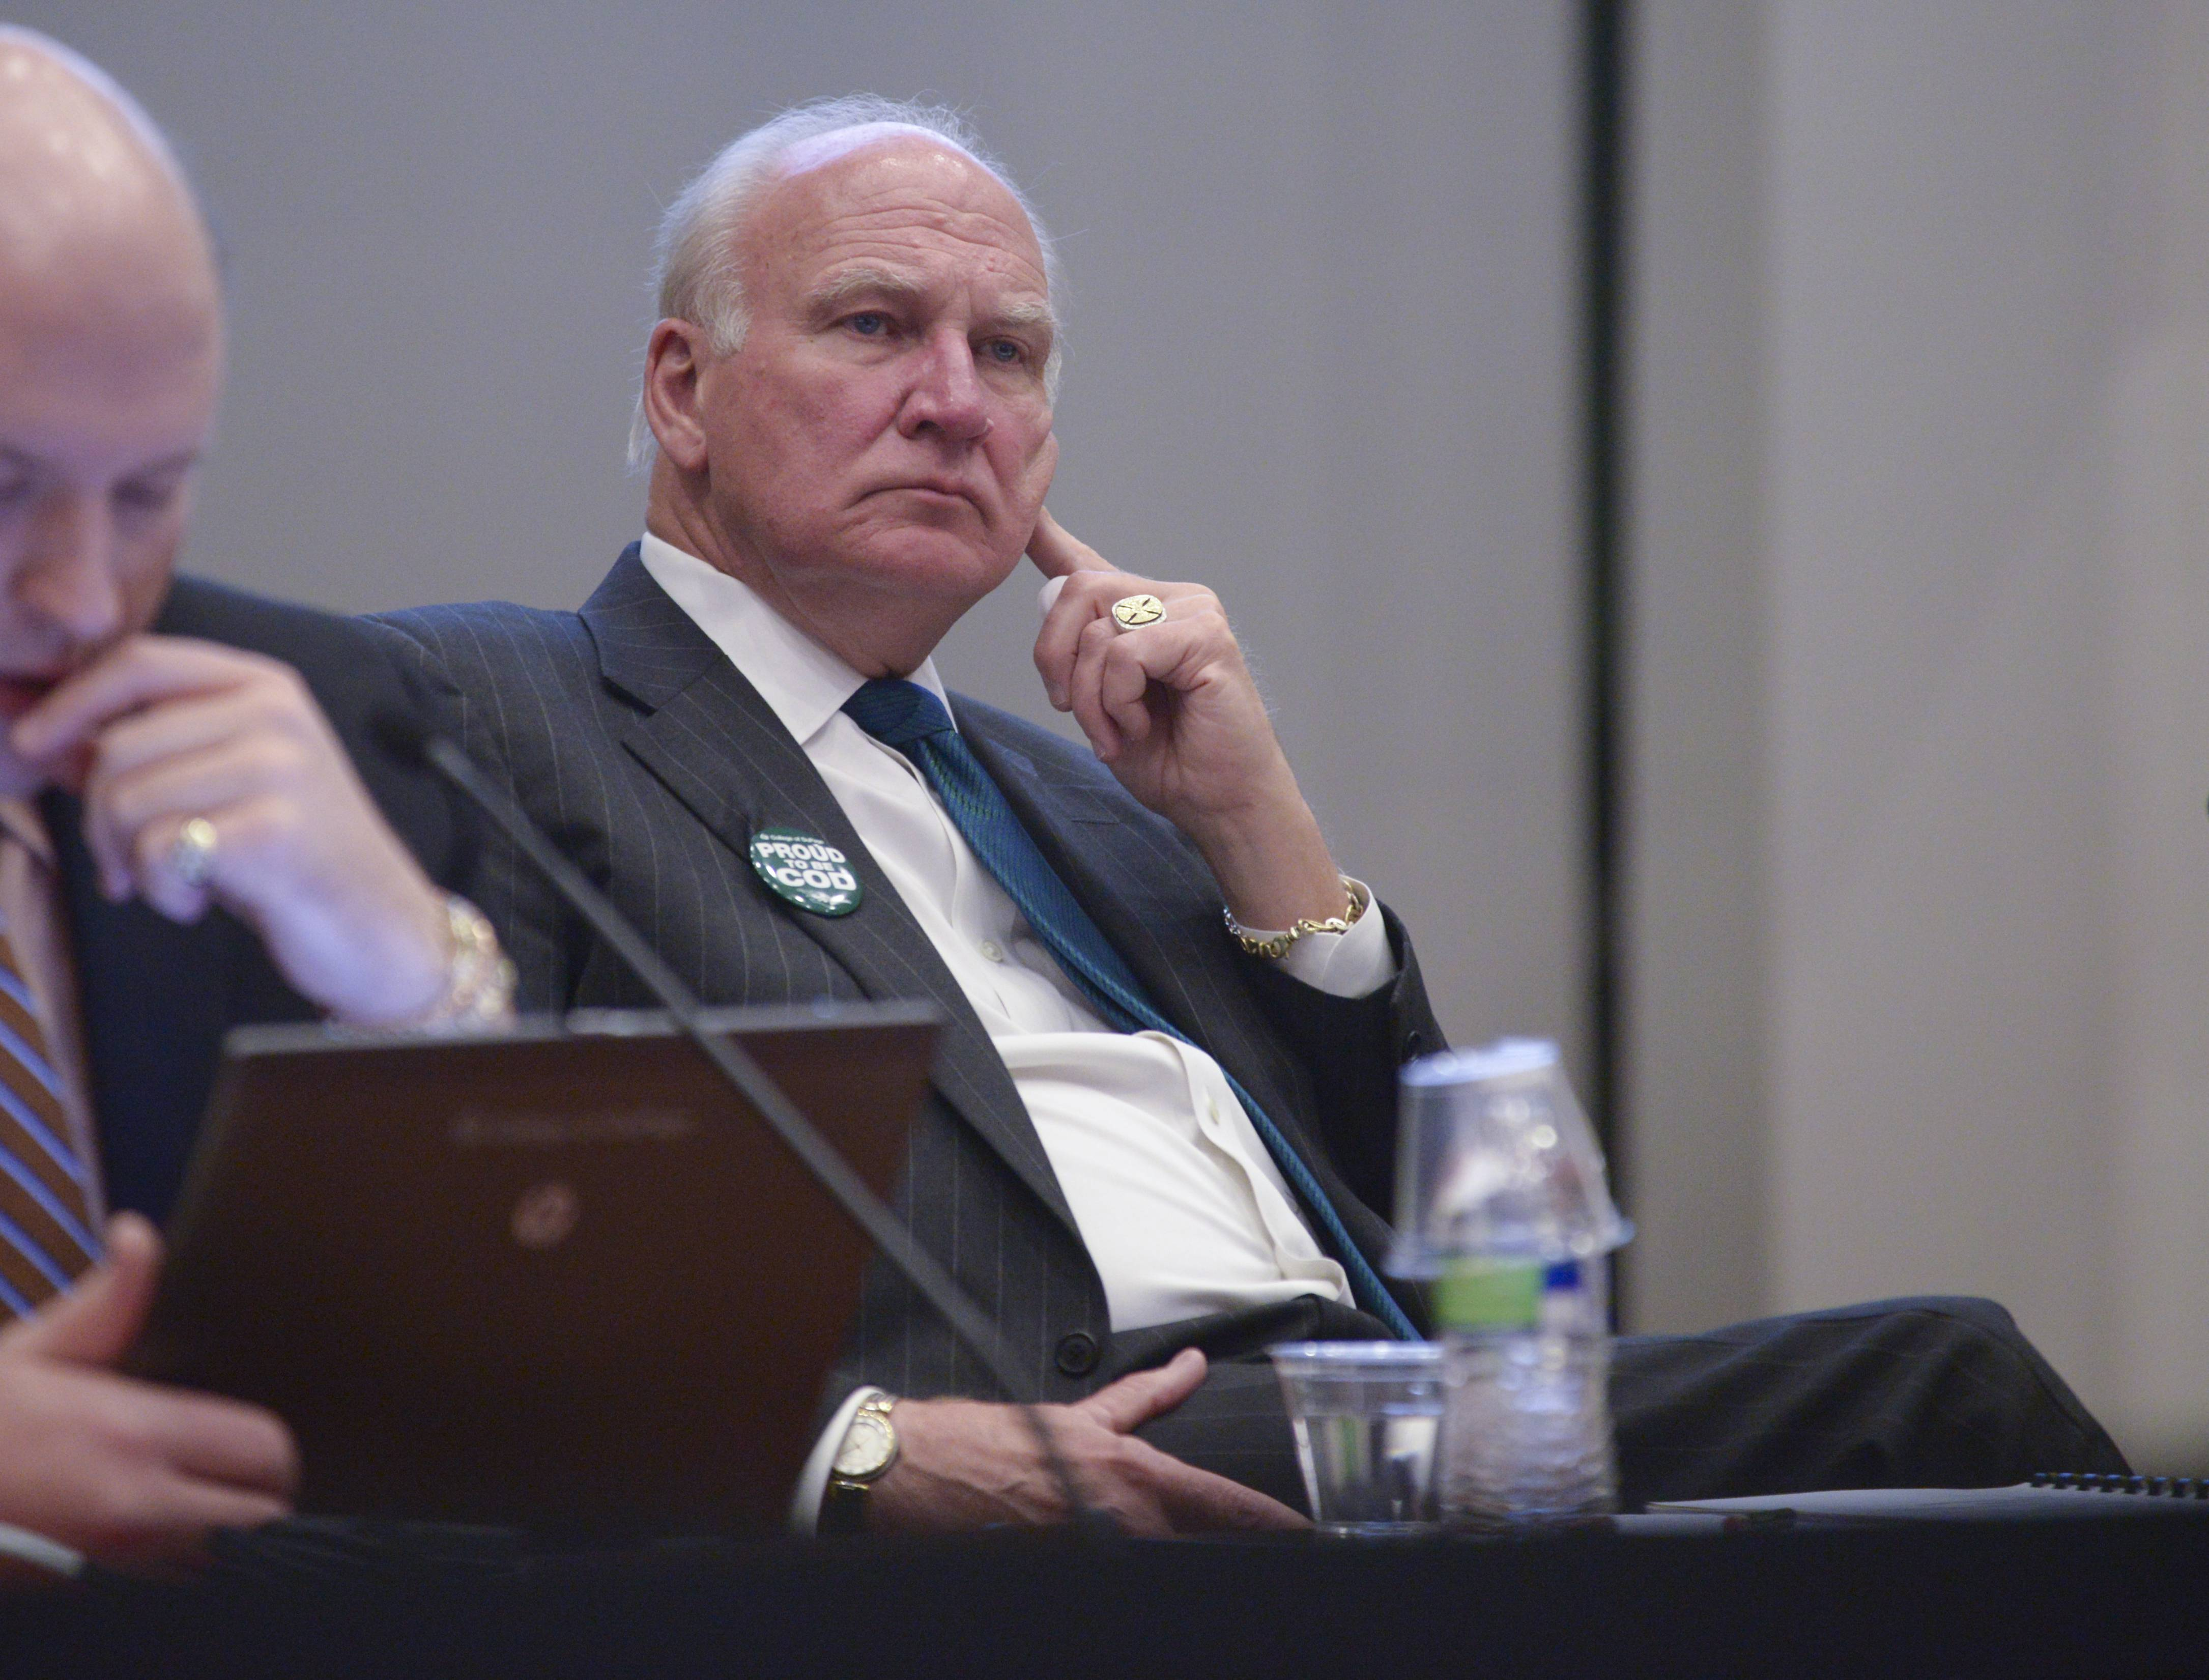 State lawmakers have started moving toward approving a sweeping audit of College of DuPage, a move spurred by the severage package given to President Robert Breuder.